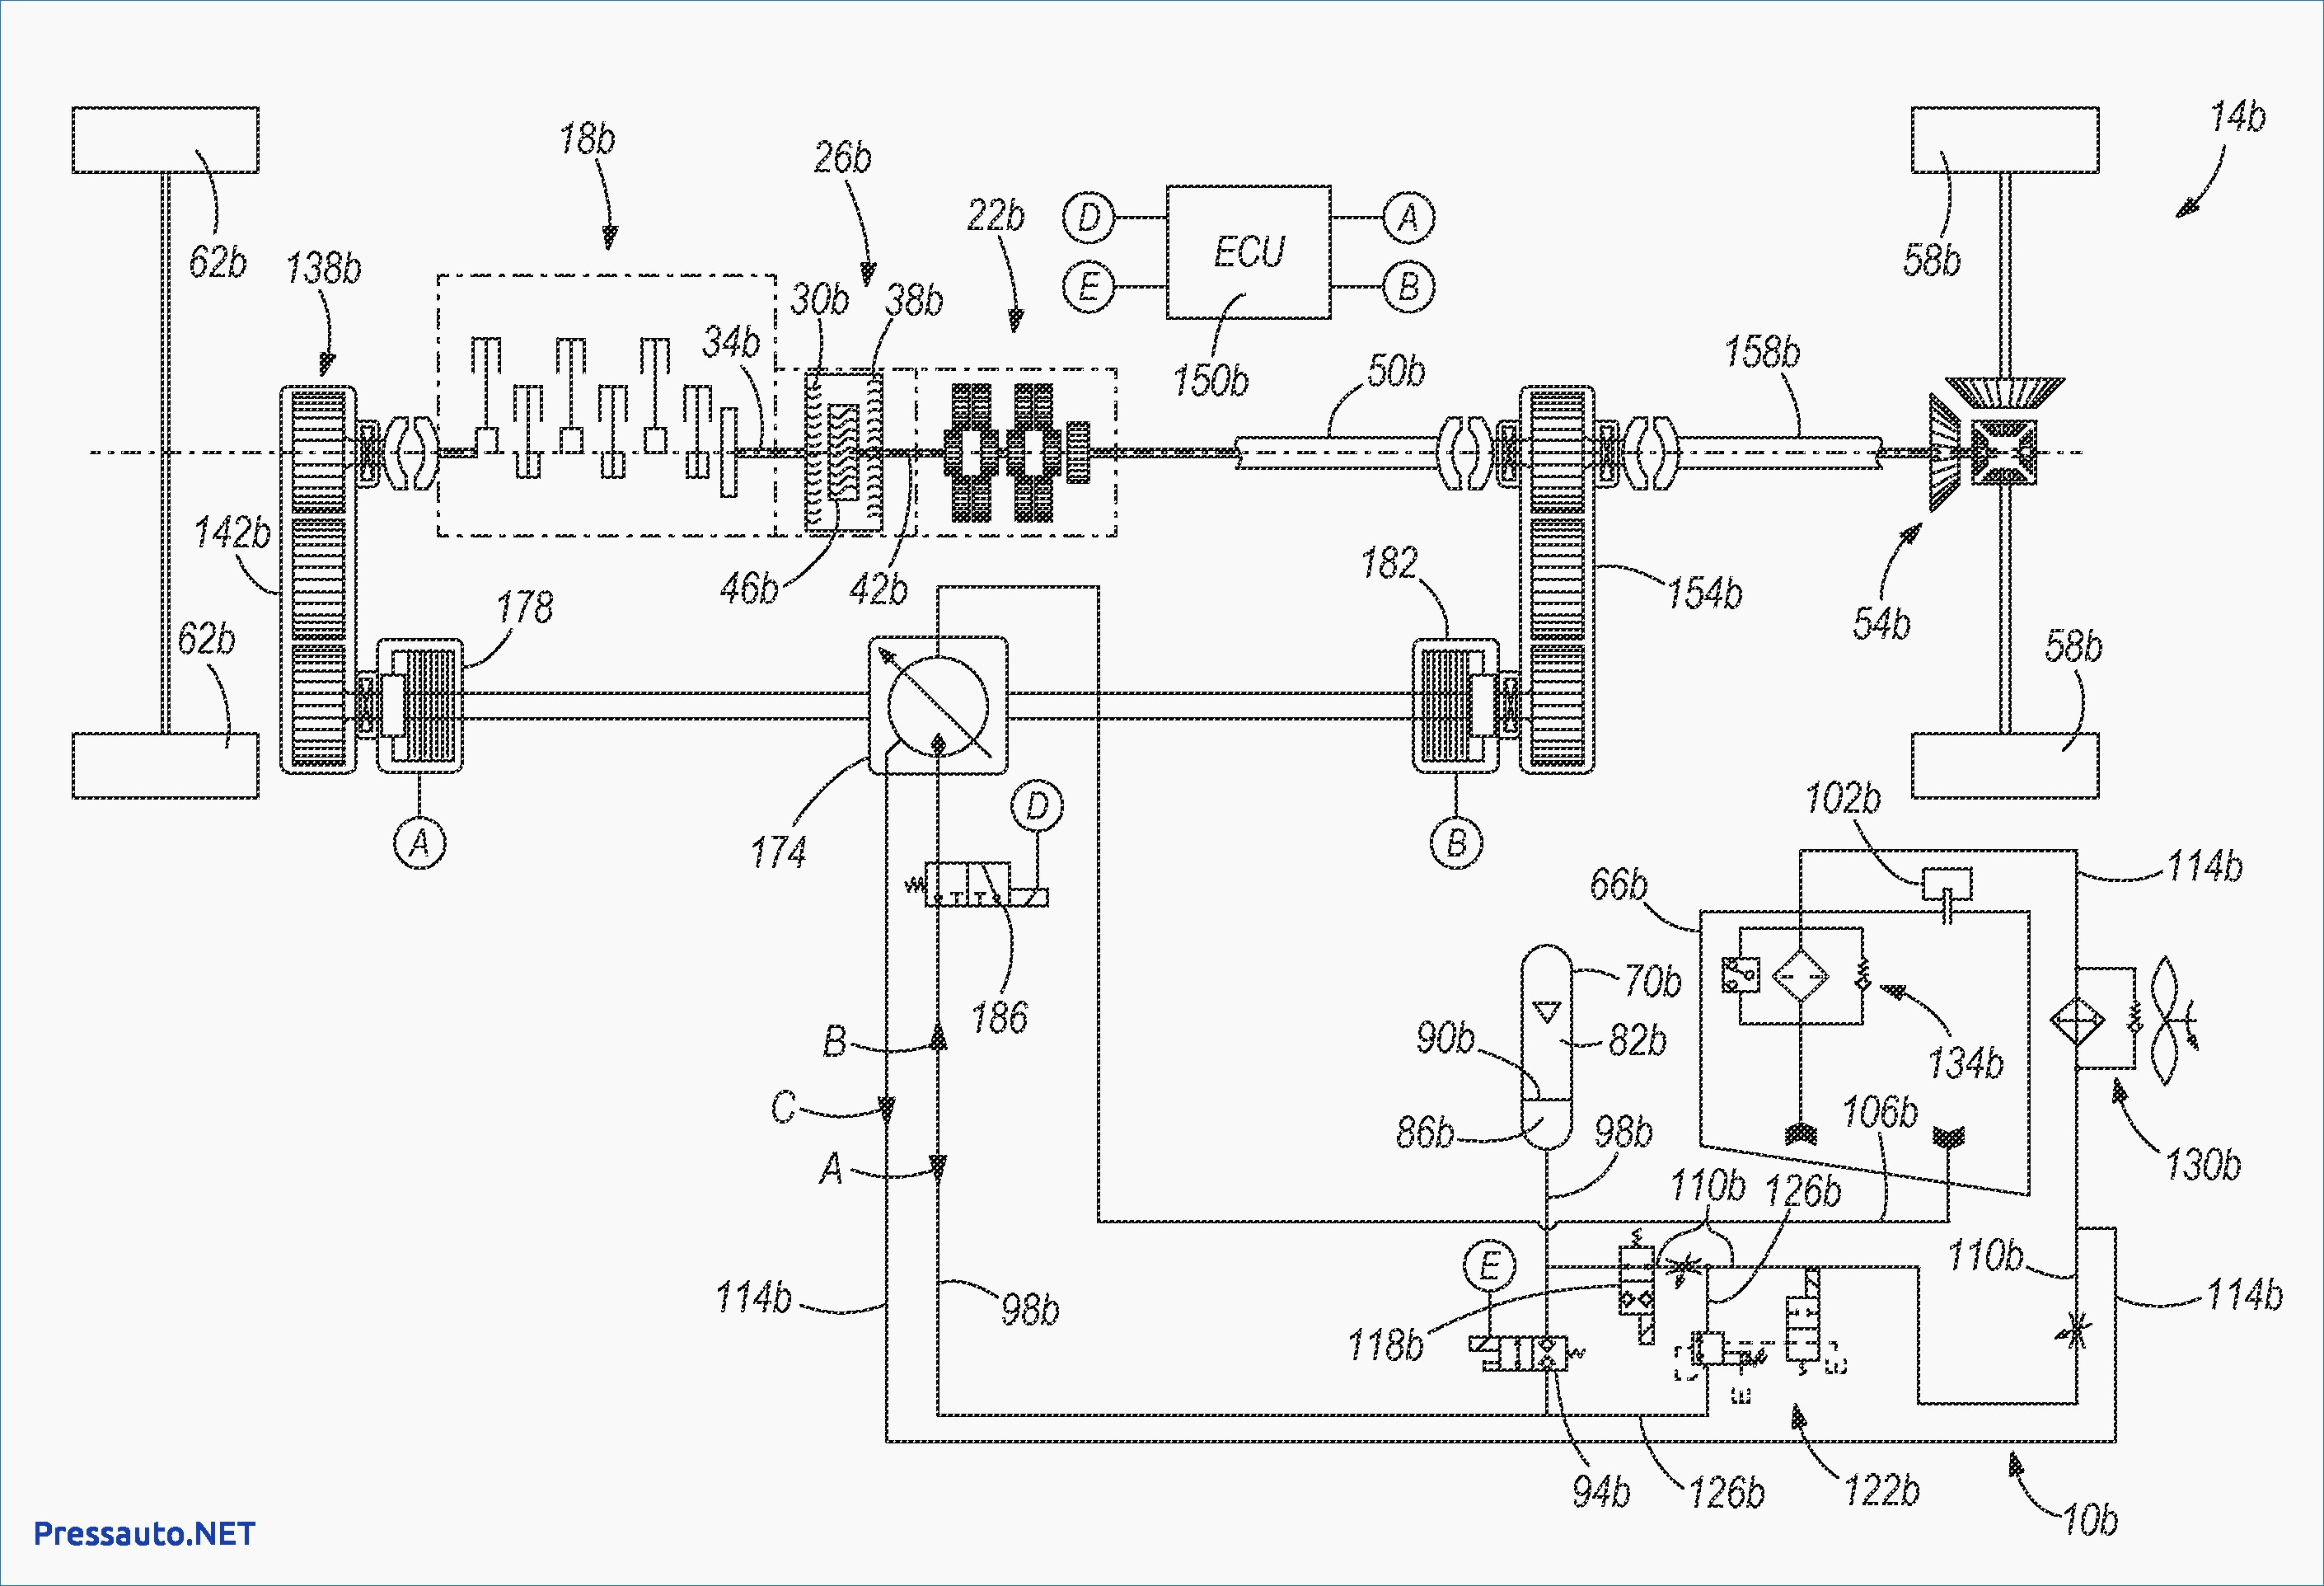 Admirable Wiring Diagram For 1993 Fleetwood Prowler Wiring Diagram Forward Wiring Cloud Hemtshollocom